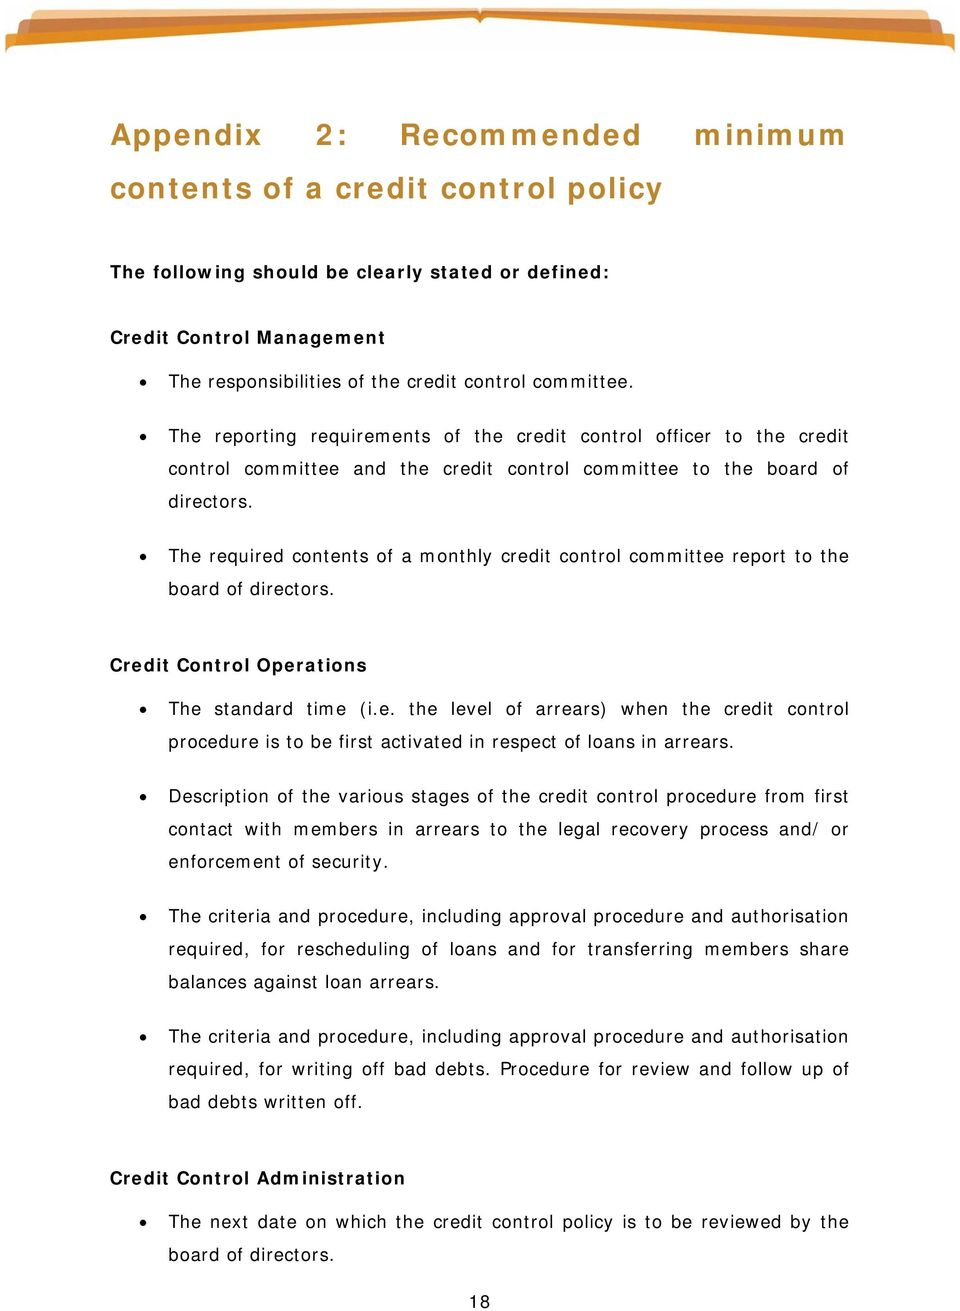 The required contents of a monthly credit control committee report to the board of directors. Credit Control Operations The standard time (i.e. the level of arrears) when the credit control procedure is to be first activated in respect of loans in arrears.